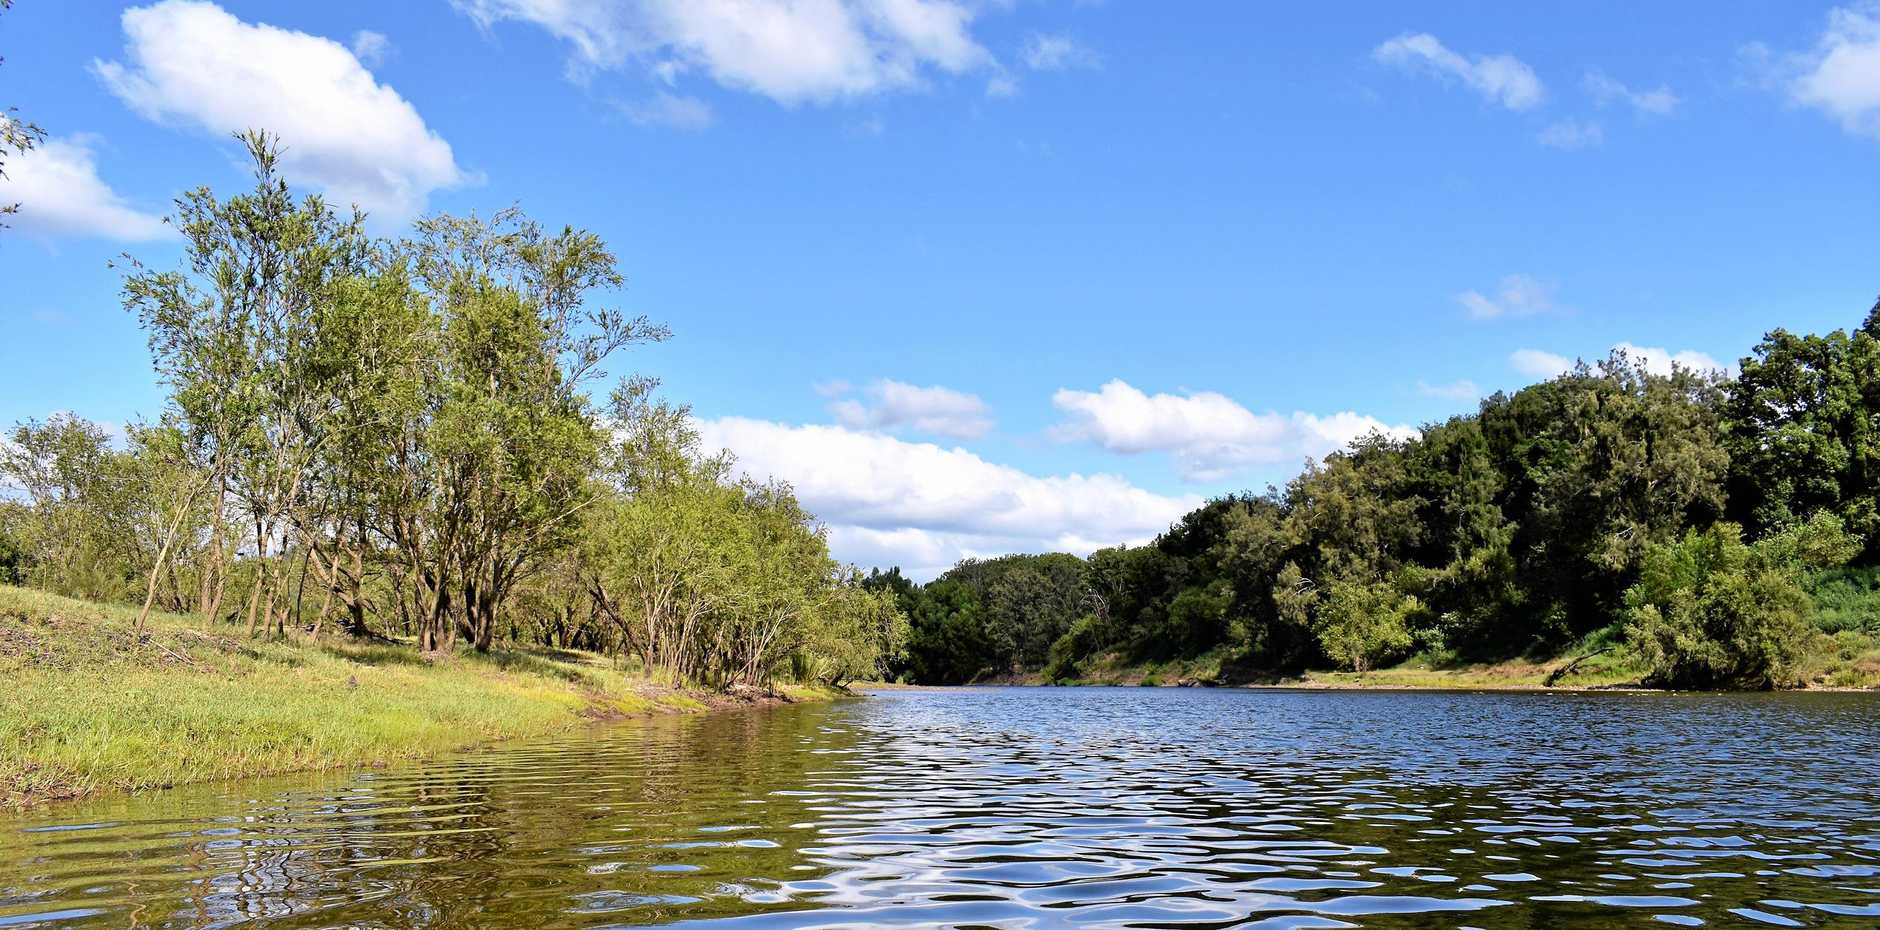 PRECIOUS RESOURCE: There are no plans to dam the Clarence River, says Kevin Hogan